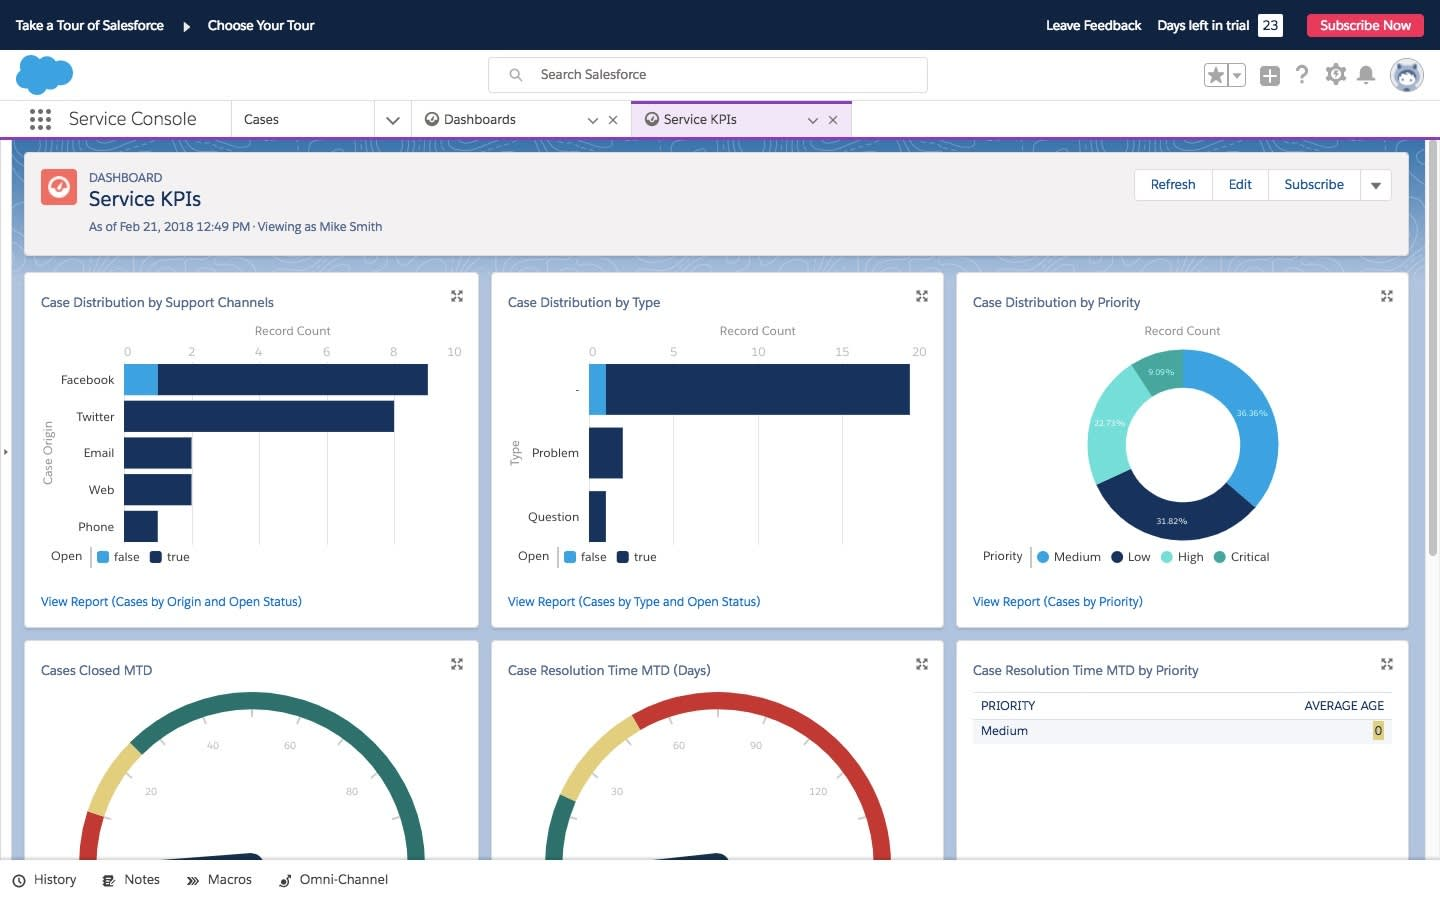 A dashboard showing service Key Performance Indicators in Salesforce